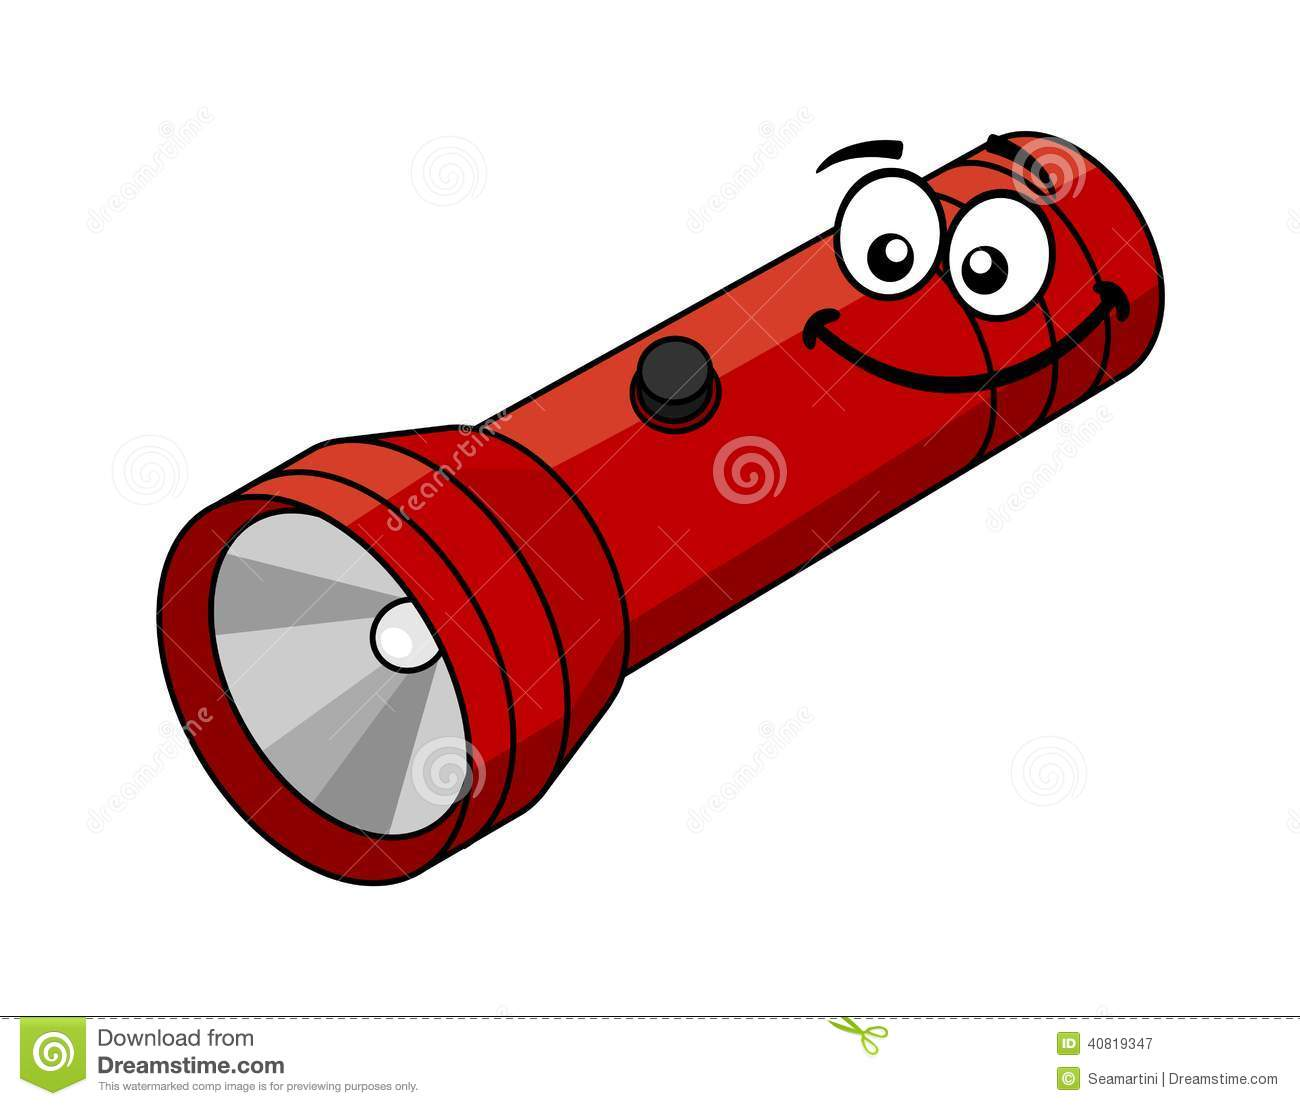 Battery Torch Stock Illustrations – 323 Battery Torch Stock ... for Battery Torch Clipart  555kxo